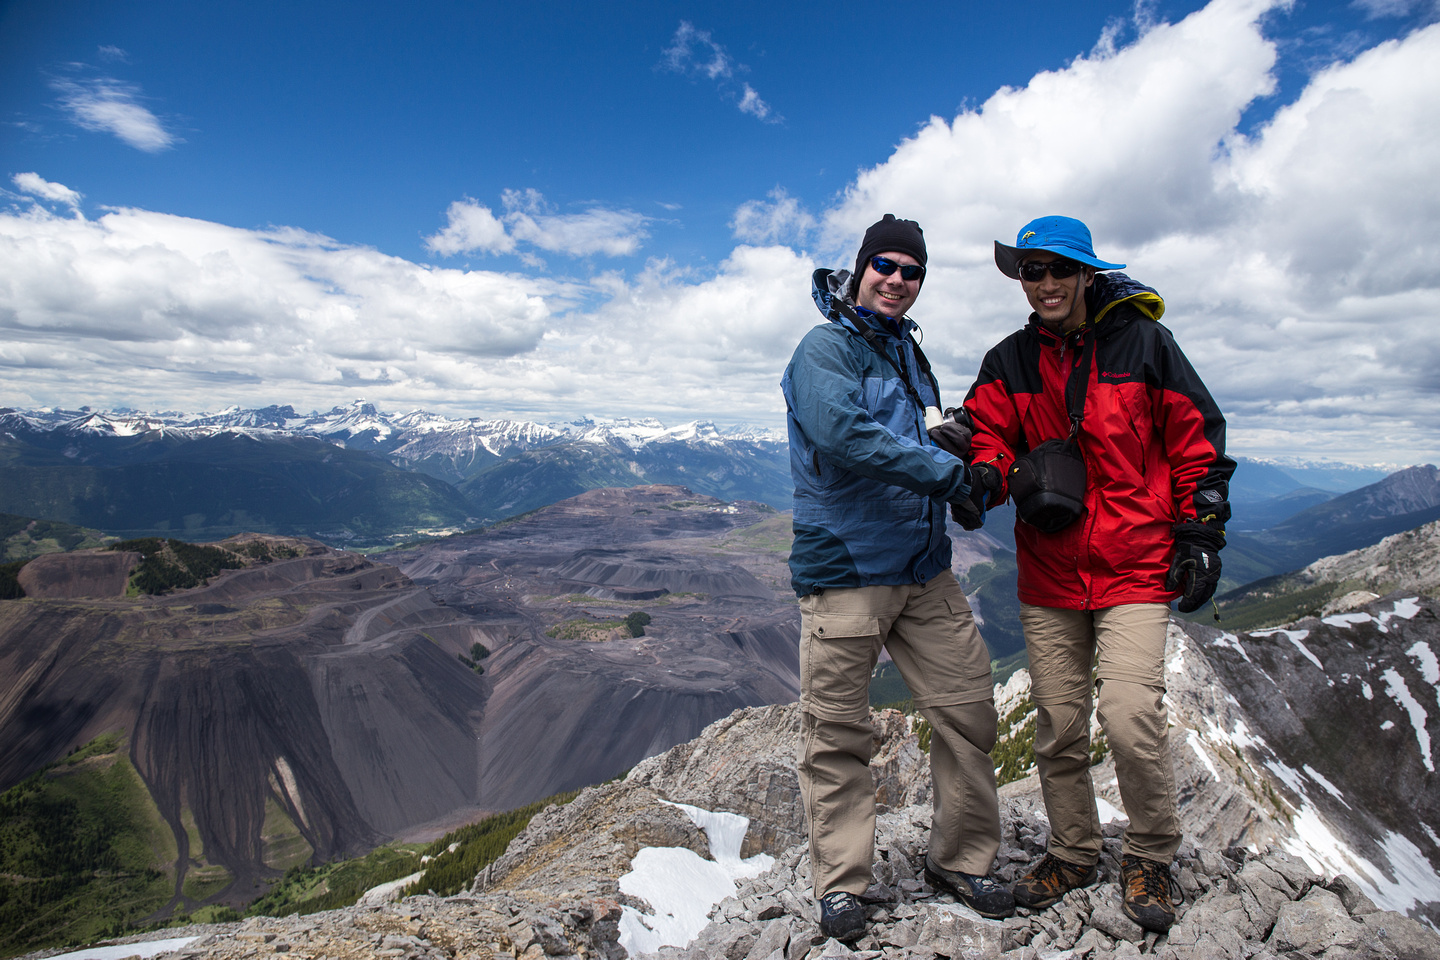 This was Wietse and Steven's 200th summit. The only difference is that Wietse took 10 years and Steven took 10 months... :)